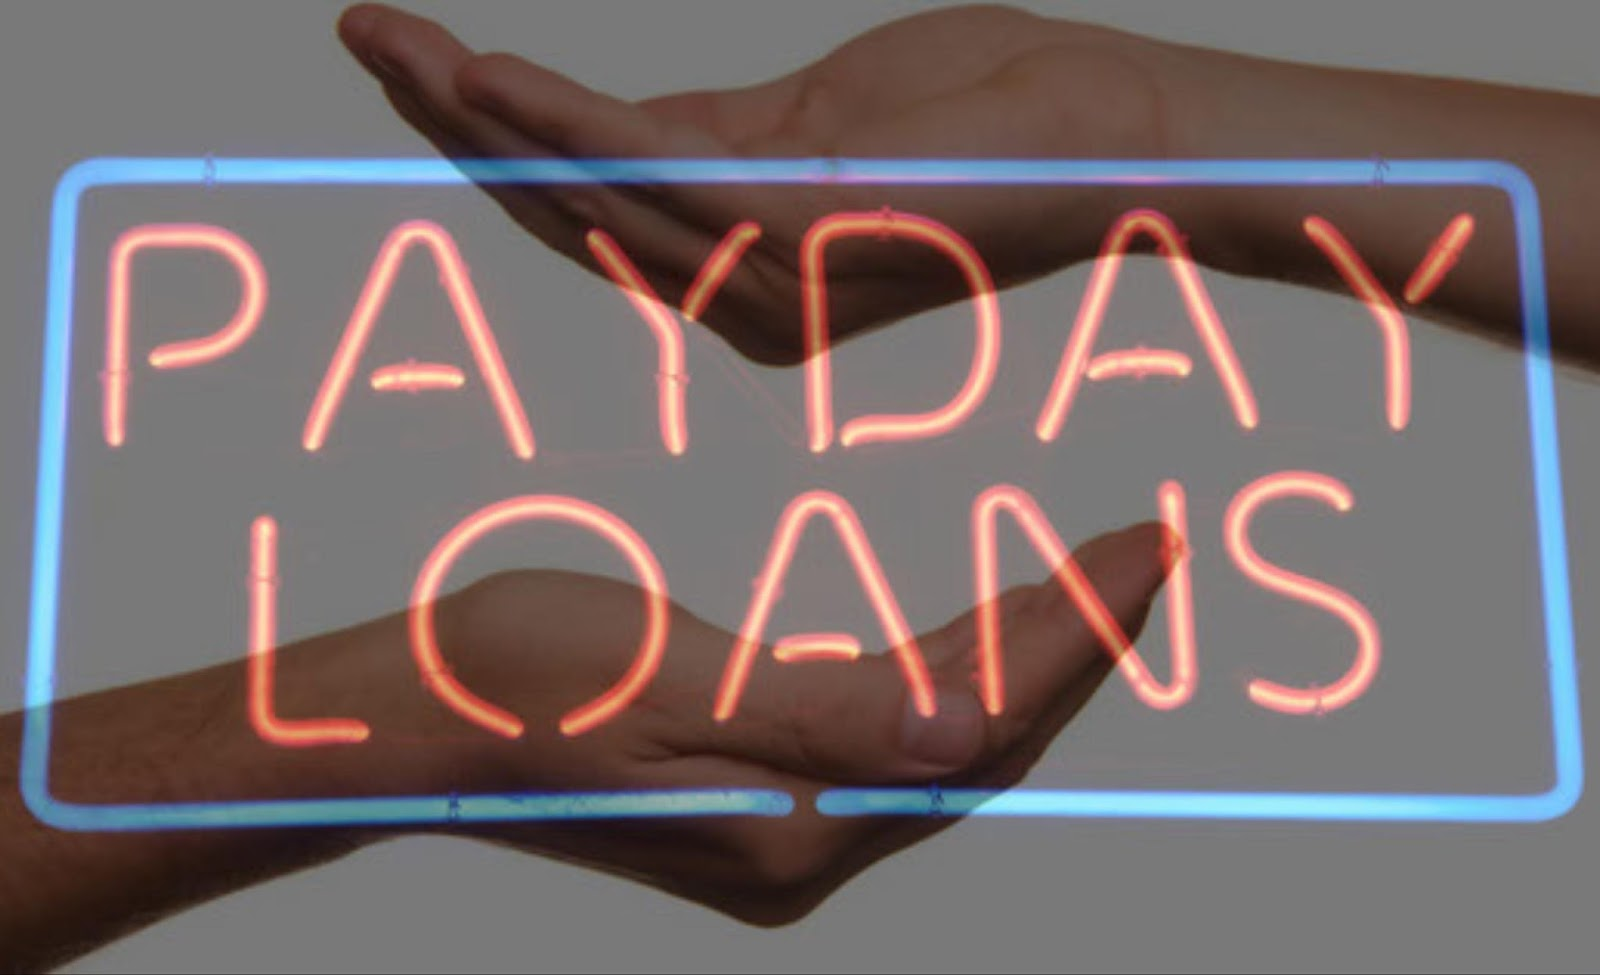 Why did some states ban payday loans image 7